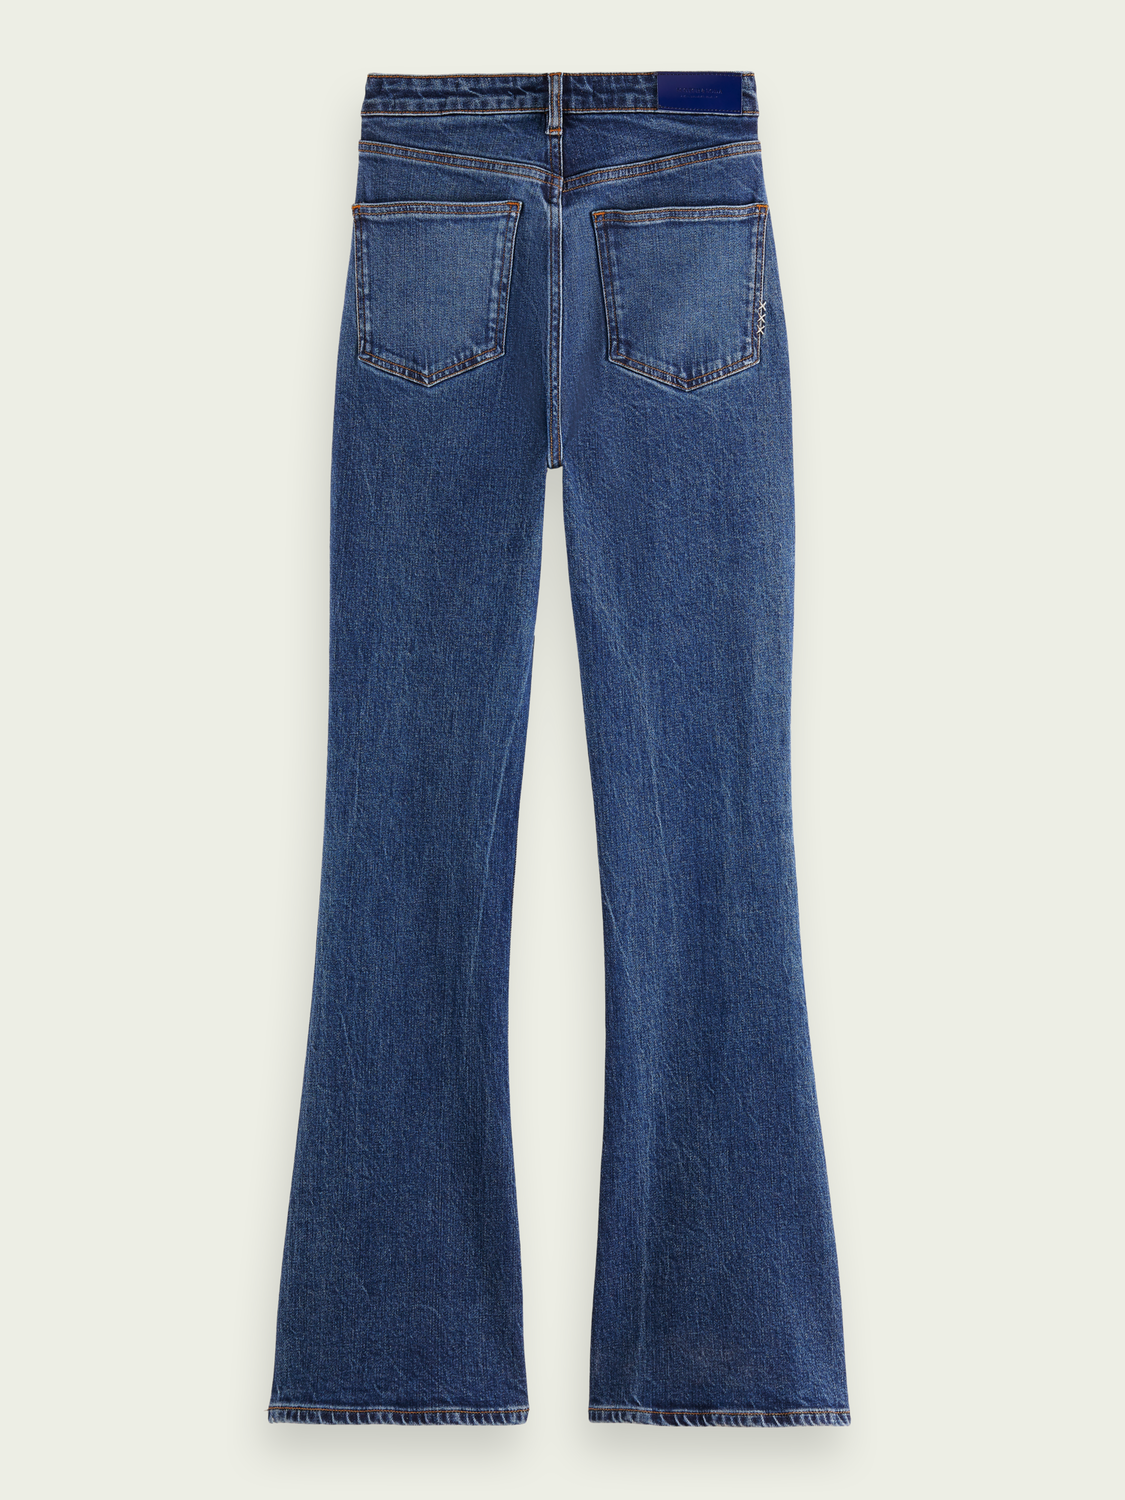 Women The Charm high-rise flared jeans ─ Take Me Out